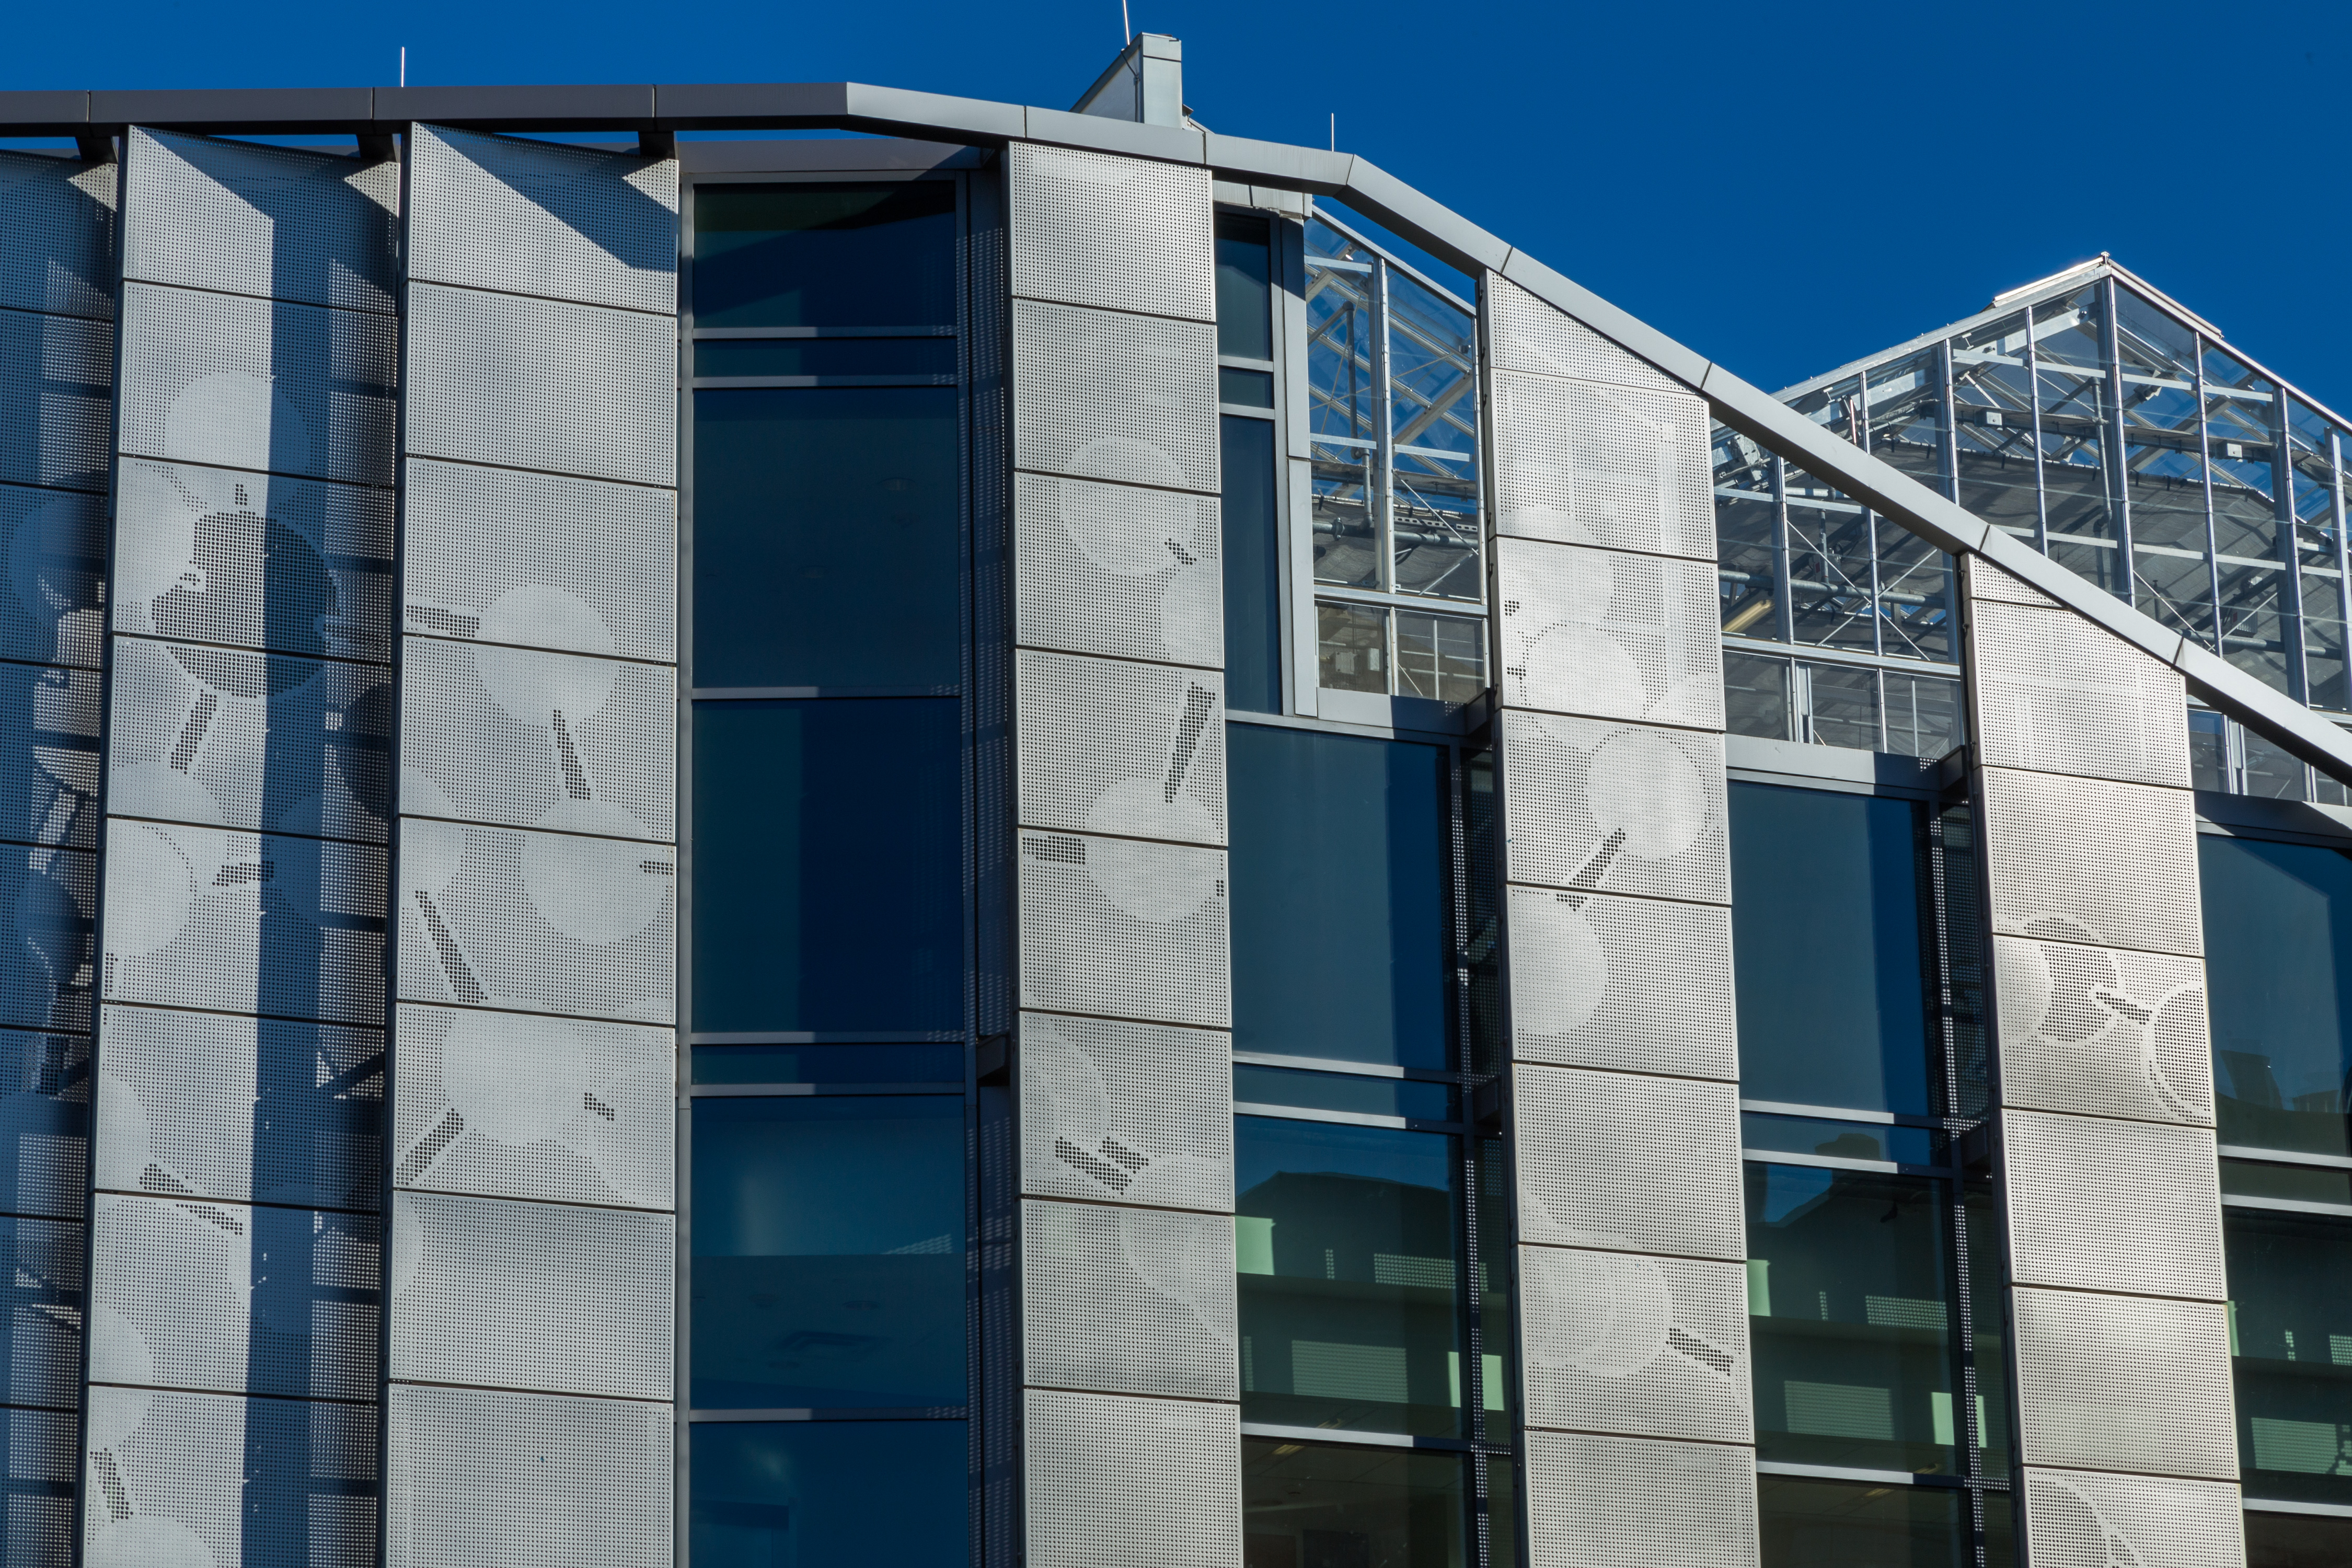 George Mason University's Science and Technology building features a custom perforated facade, created using Zahner ImageWall technology.